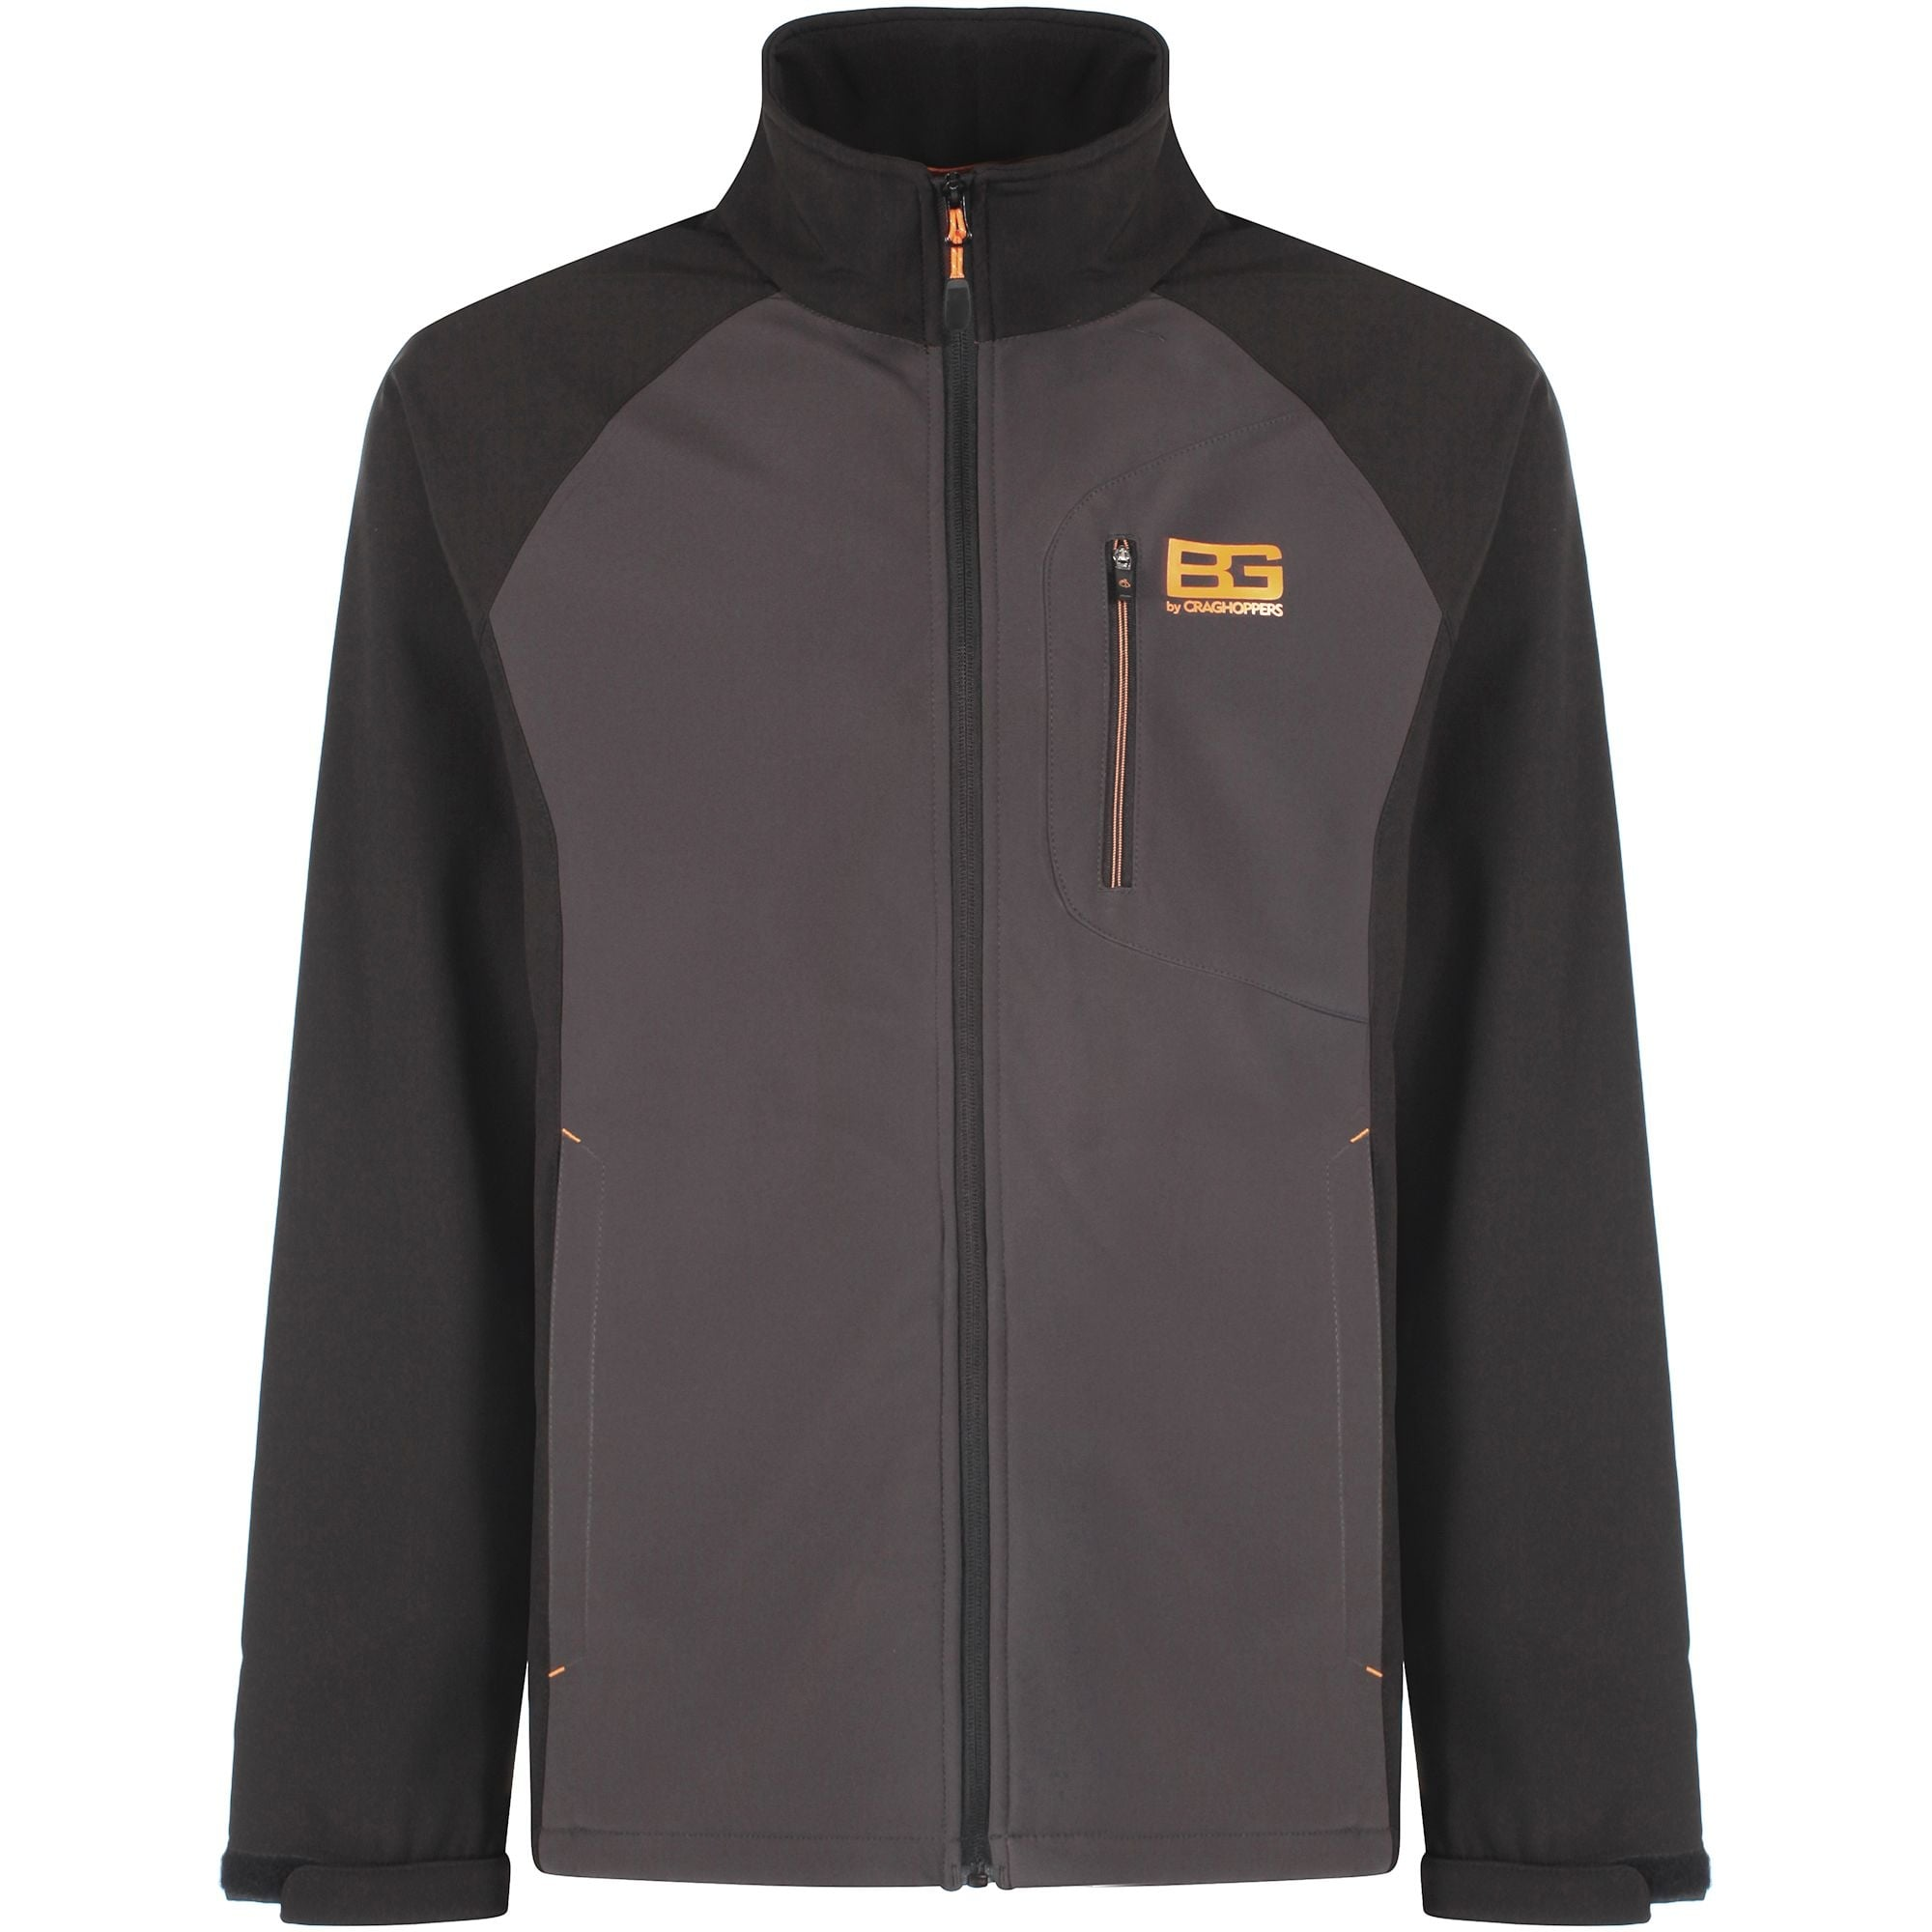 Bear Grills Clothes | Bear Grylls Clothing | Bear Grylls Gerber Gear